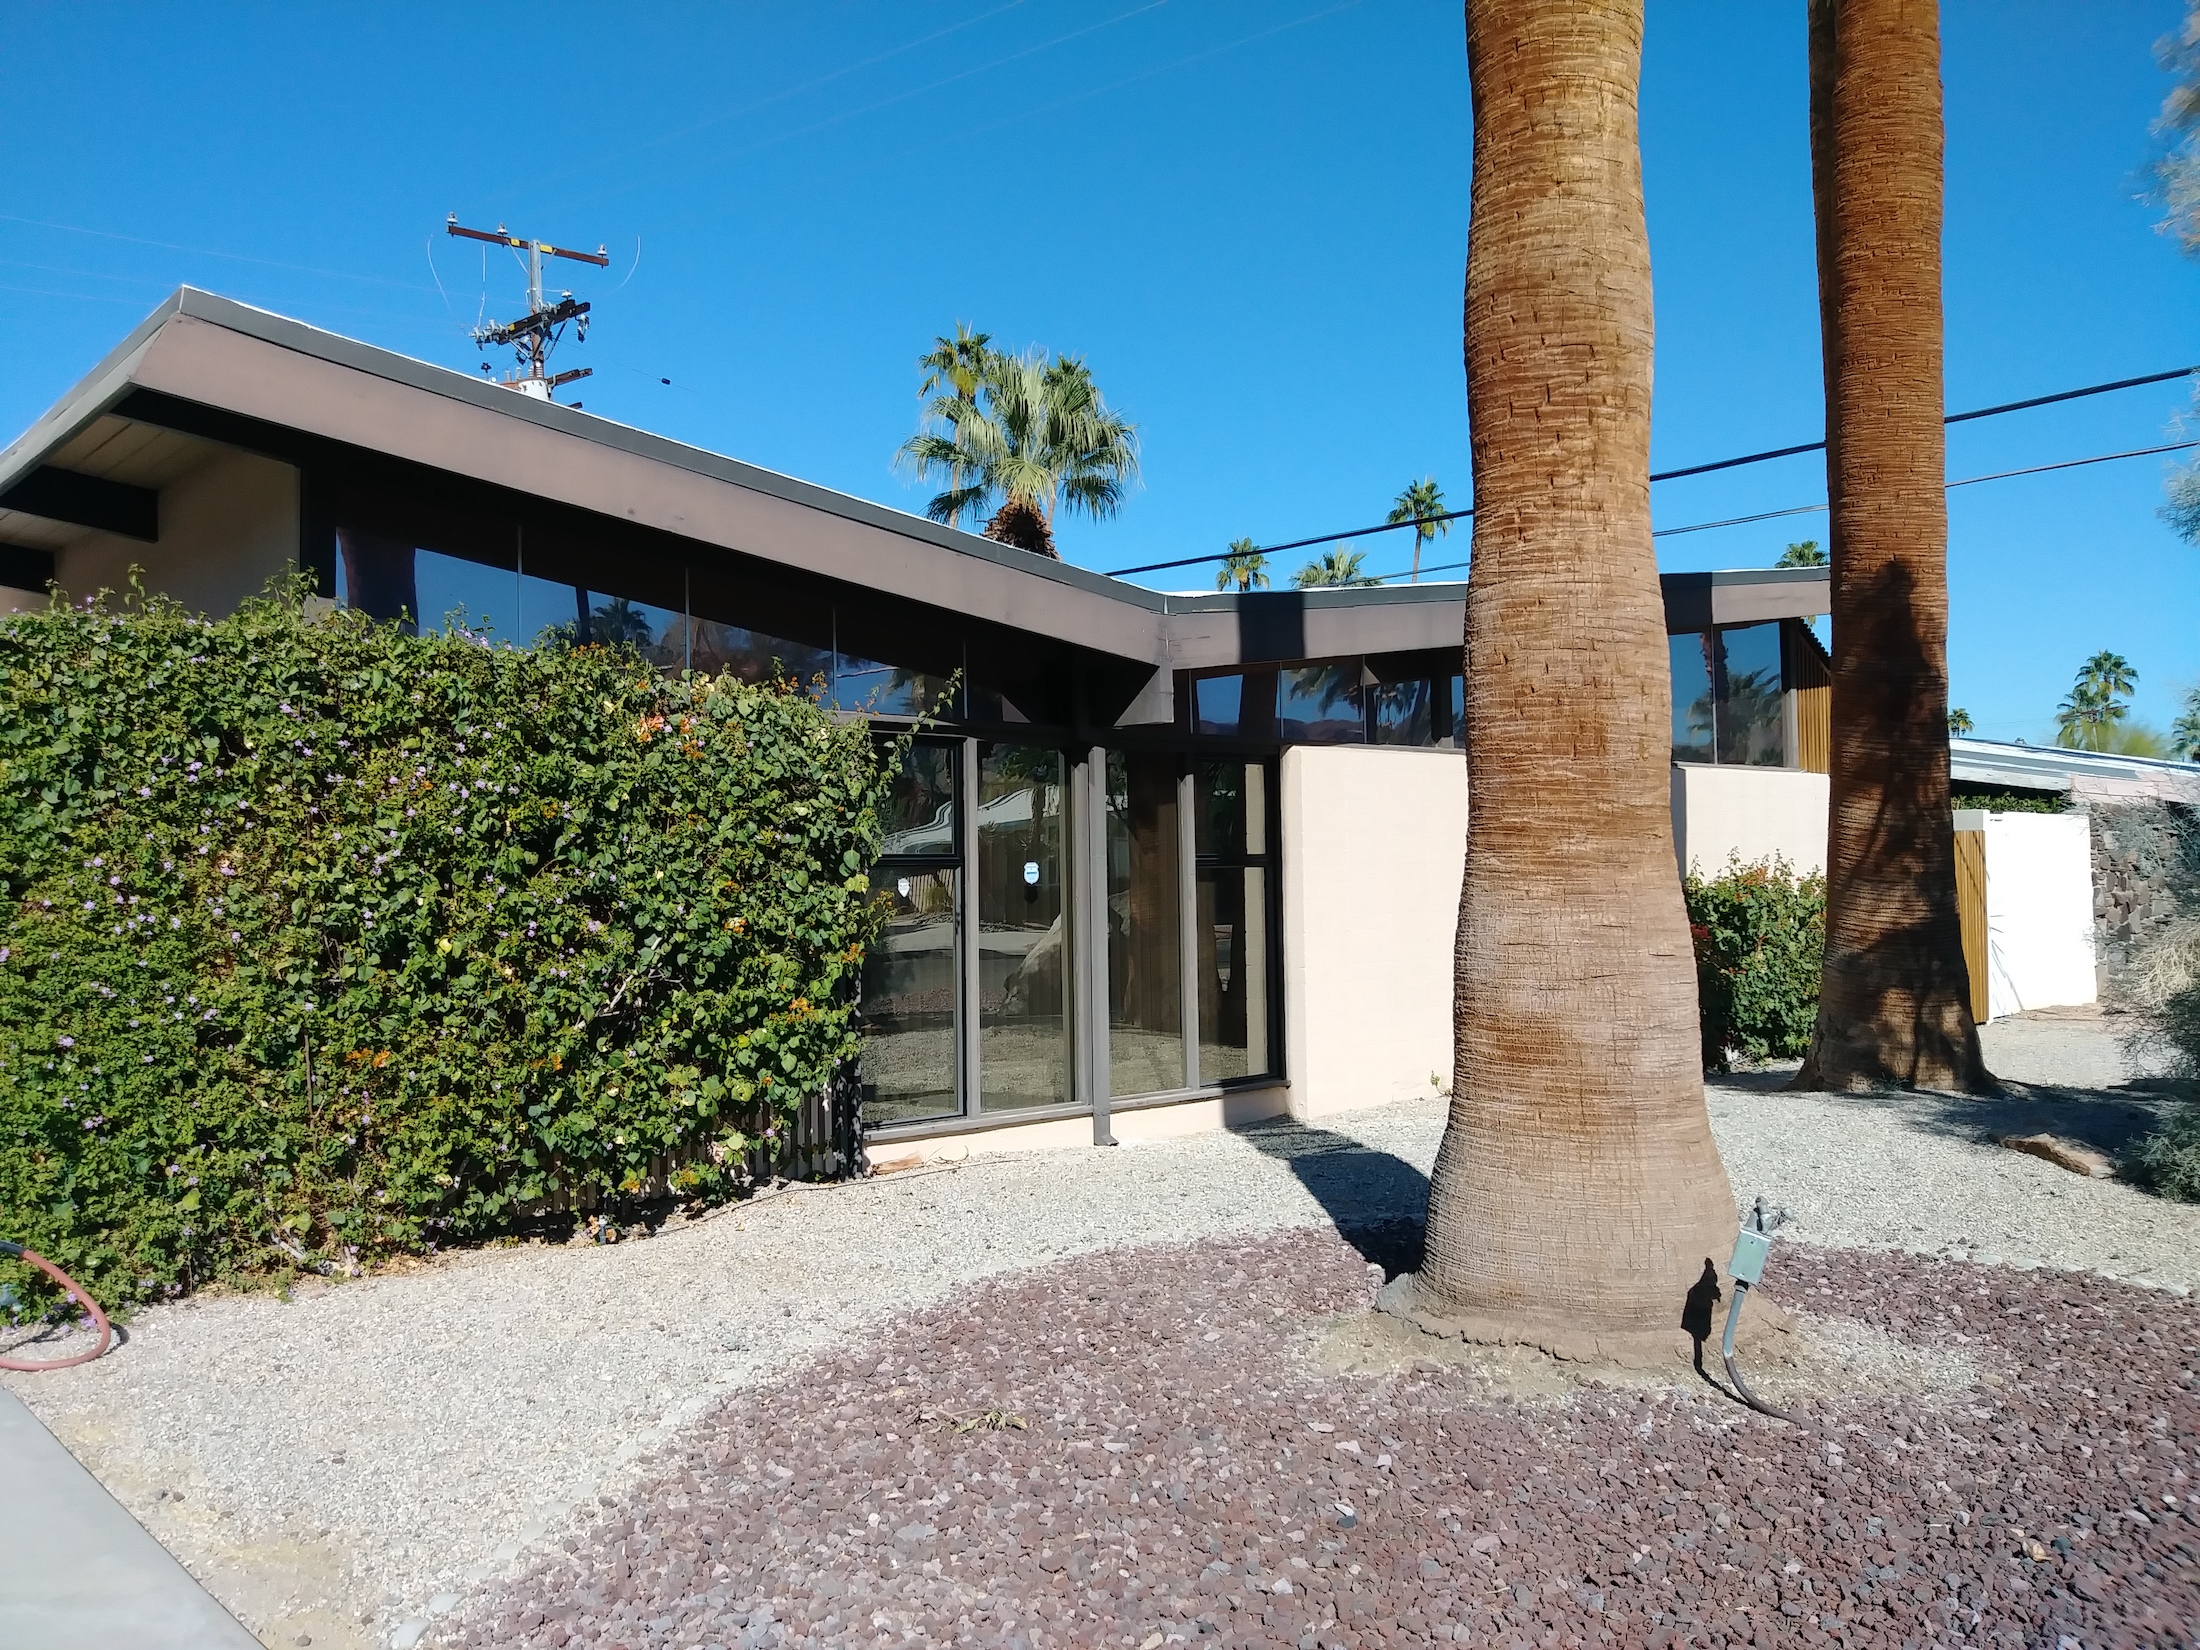 Picture of a business in Palm Springs CA supplied with tint to reduce heat and glare.